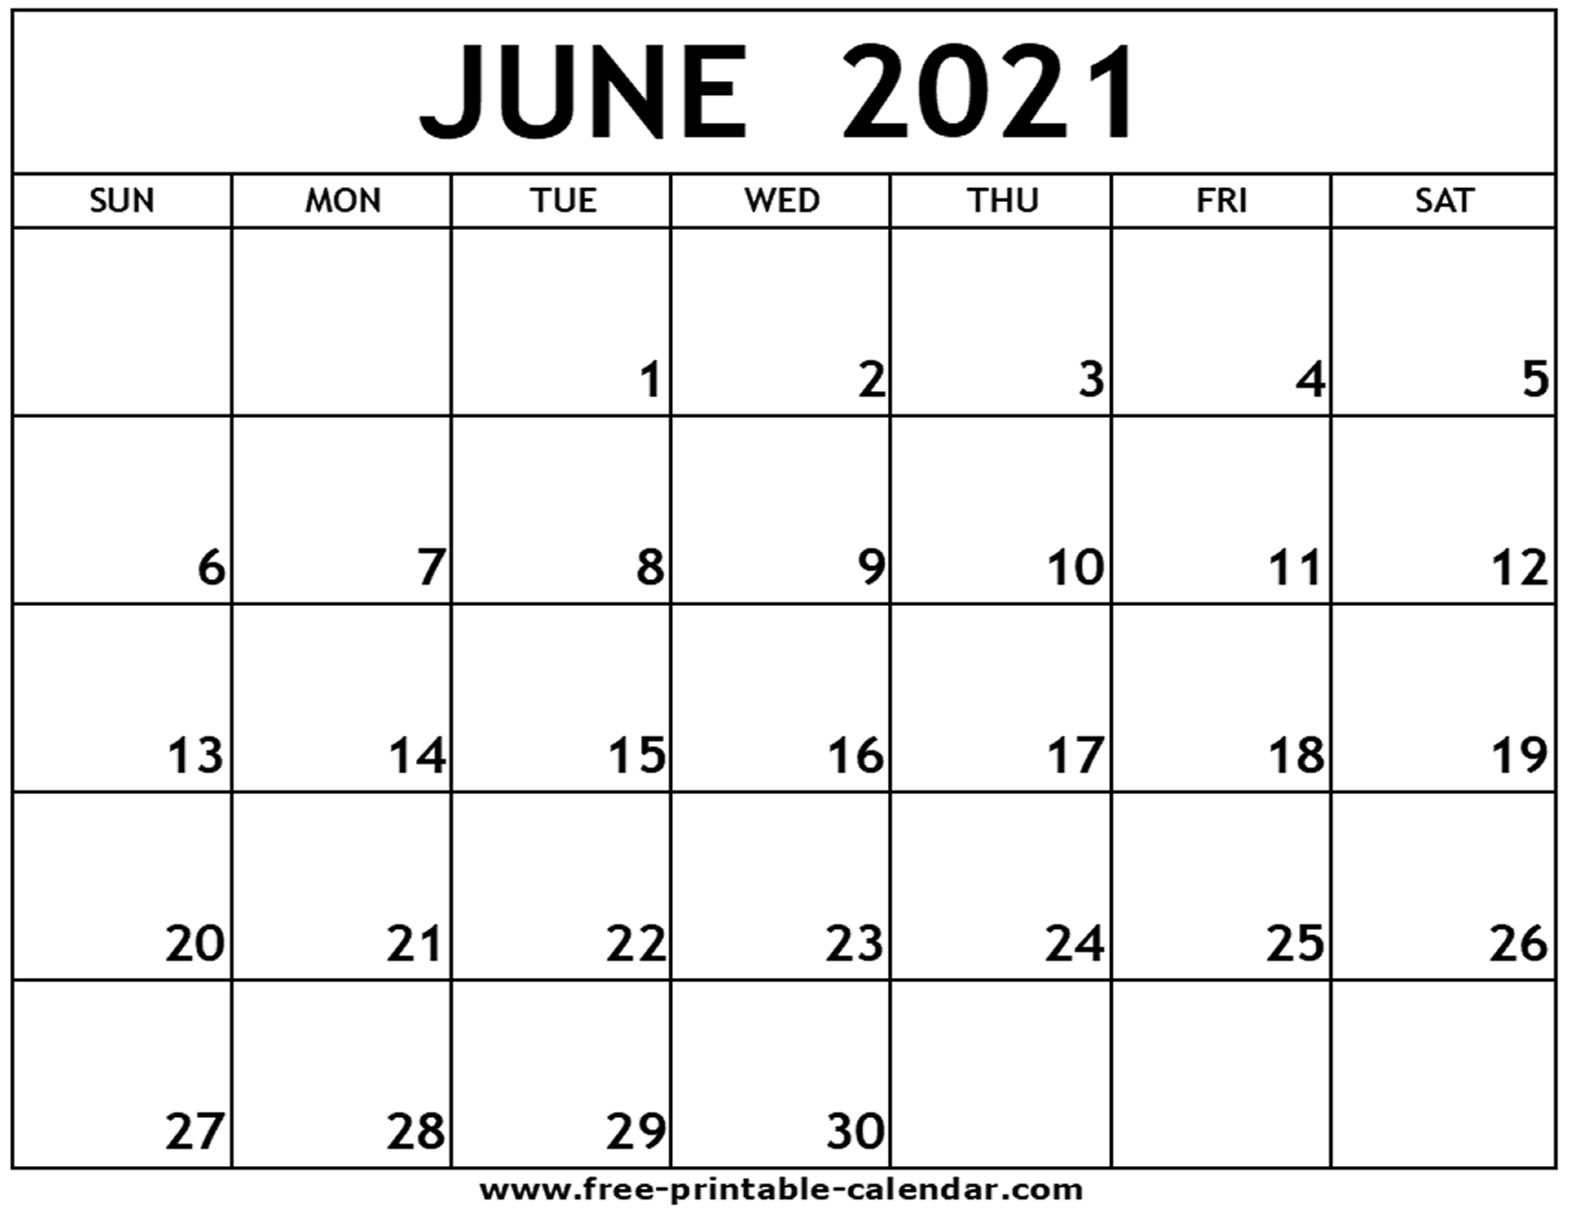 Catch 2021 June Calendars To Print Without Downloading